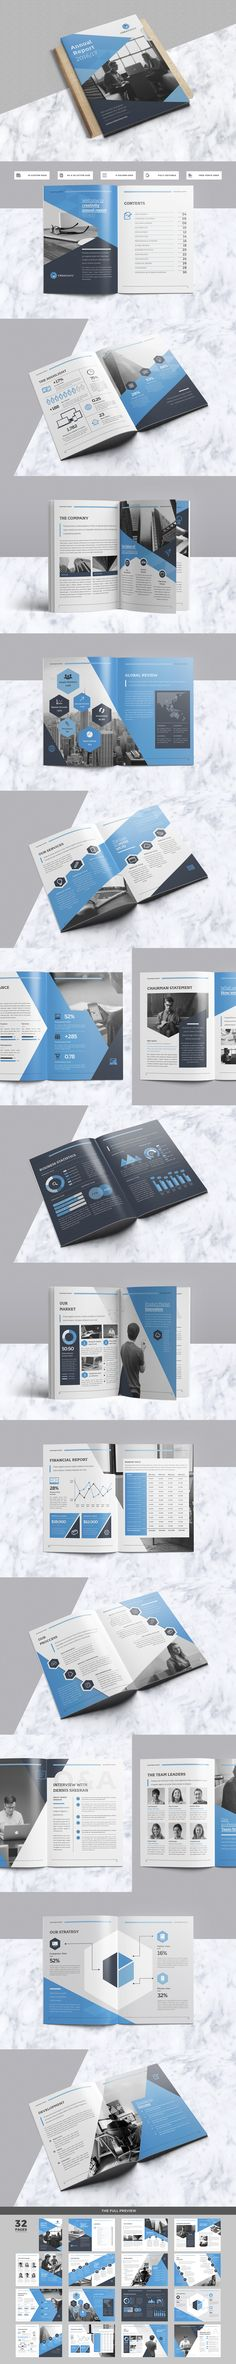 Professional, Creative and High Quality Annual Report 28 Pages A4 - annual report template